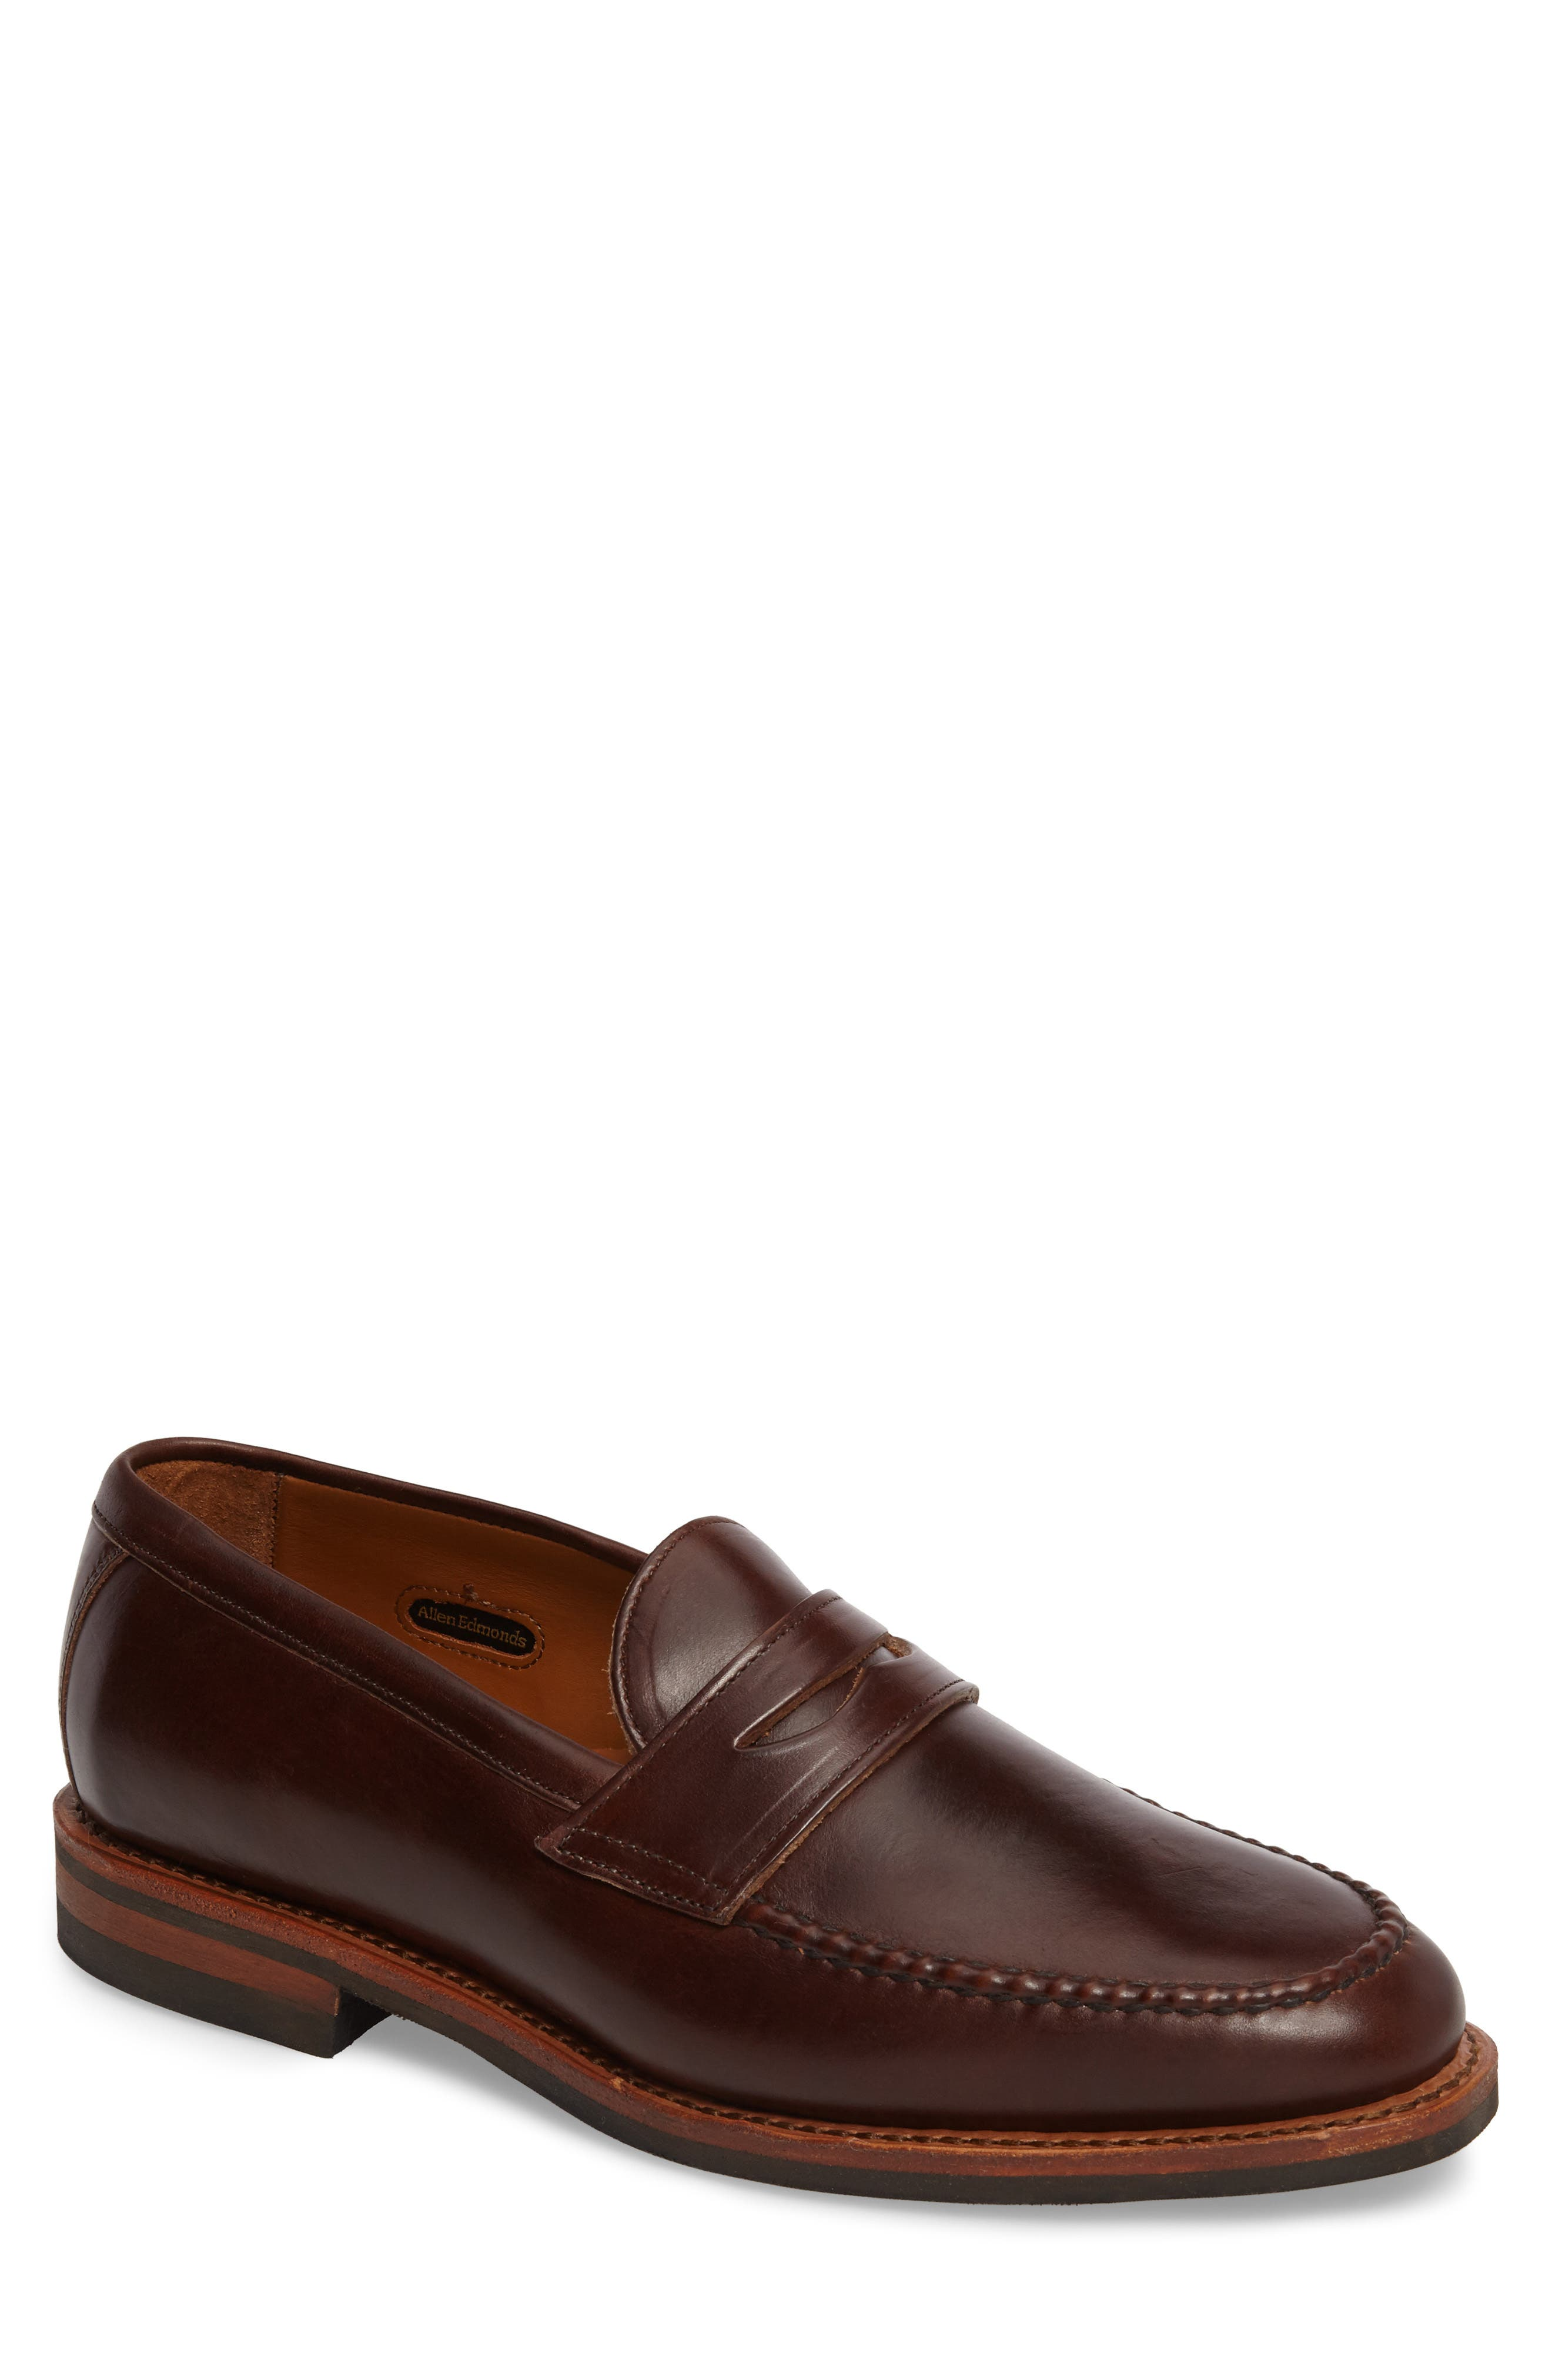 Alternate Image 1 Selected - Allen Edmonds Addison Penny Loafer (Men)